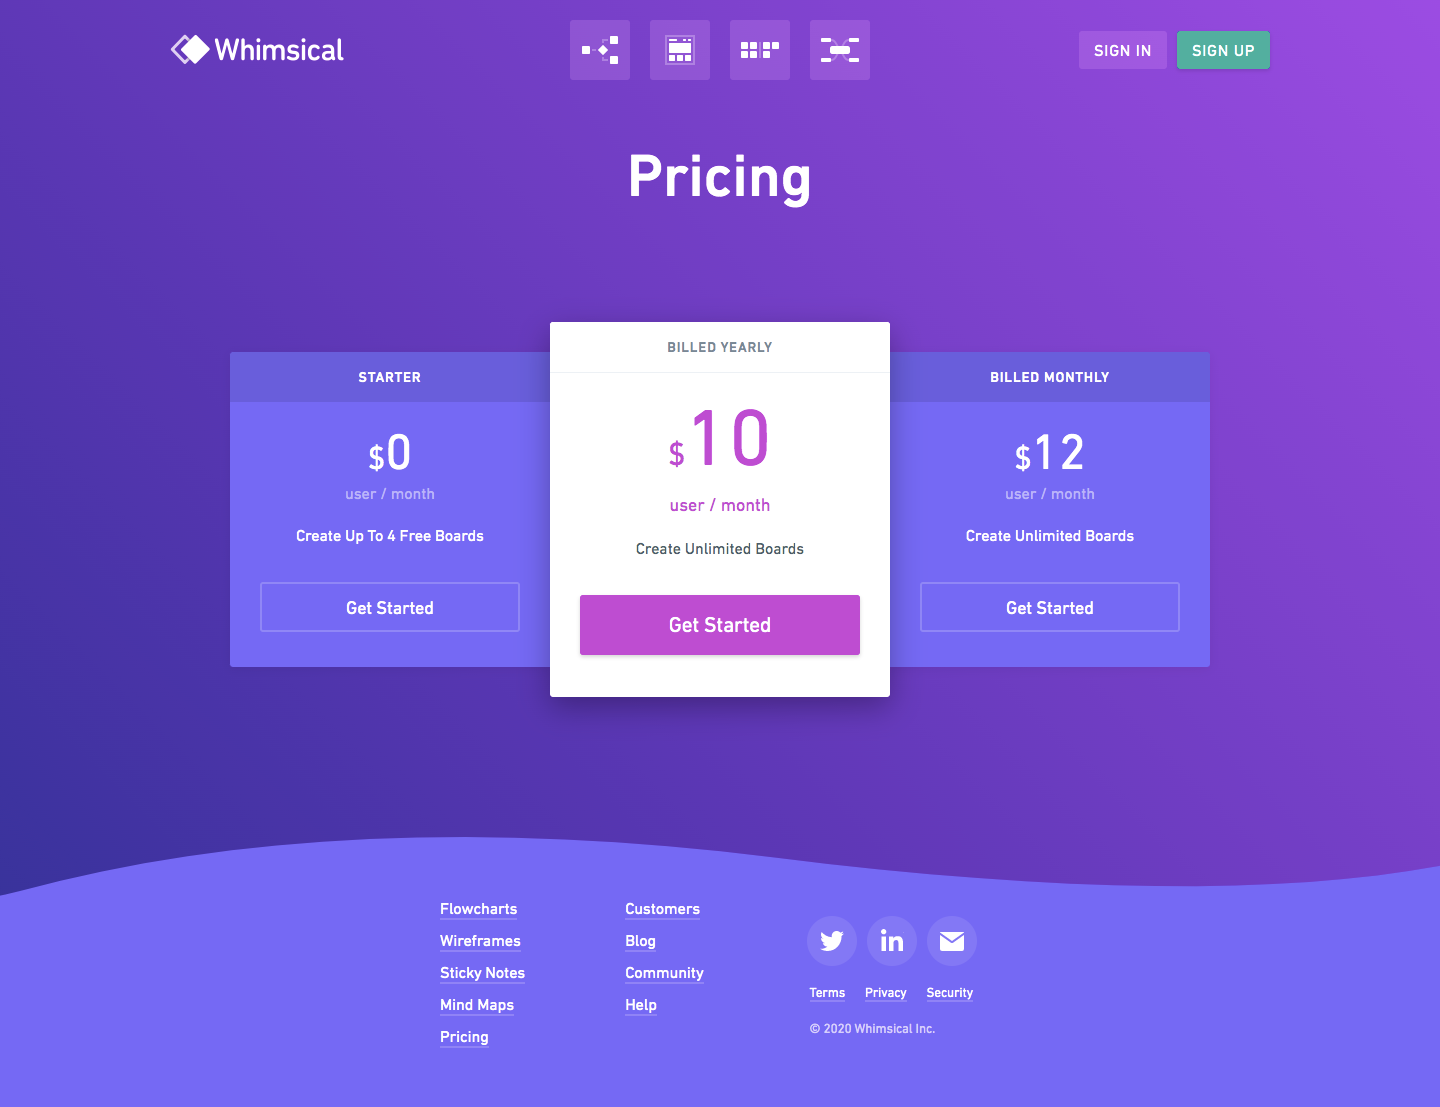 Whimsical Pricing Page